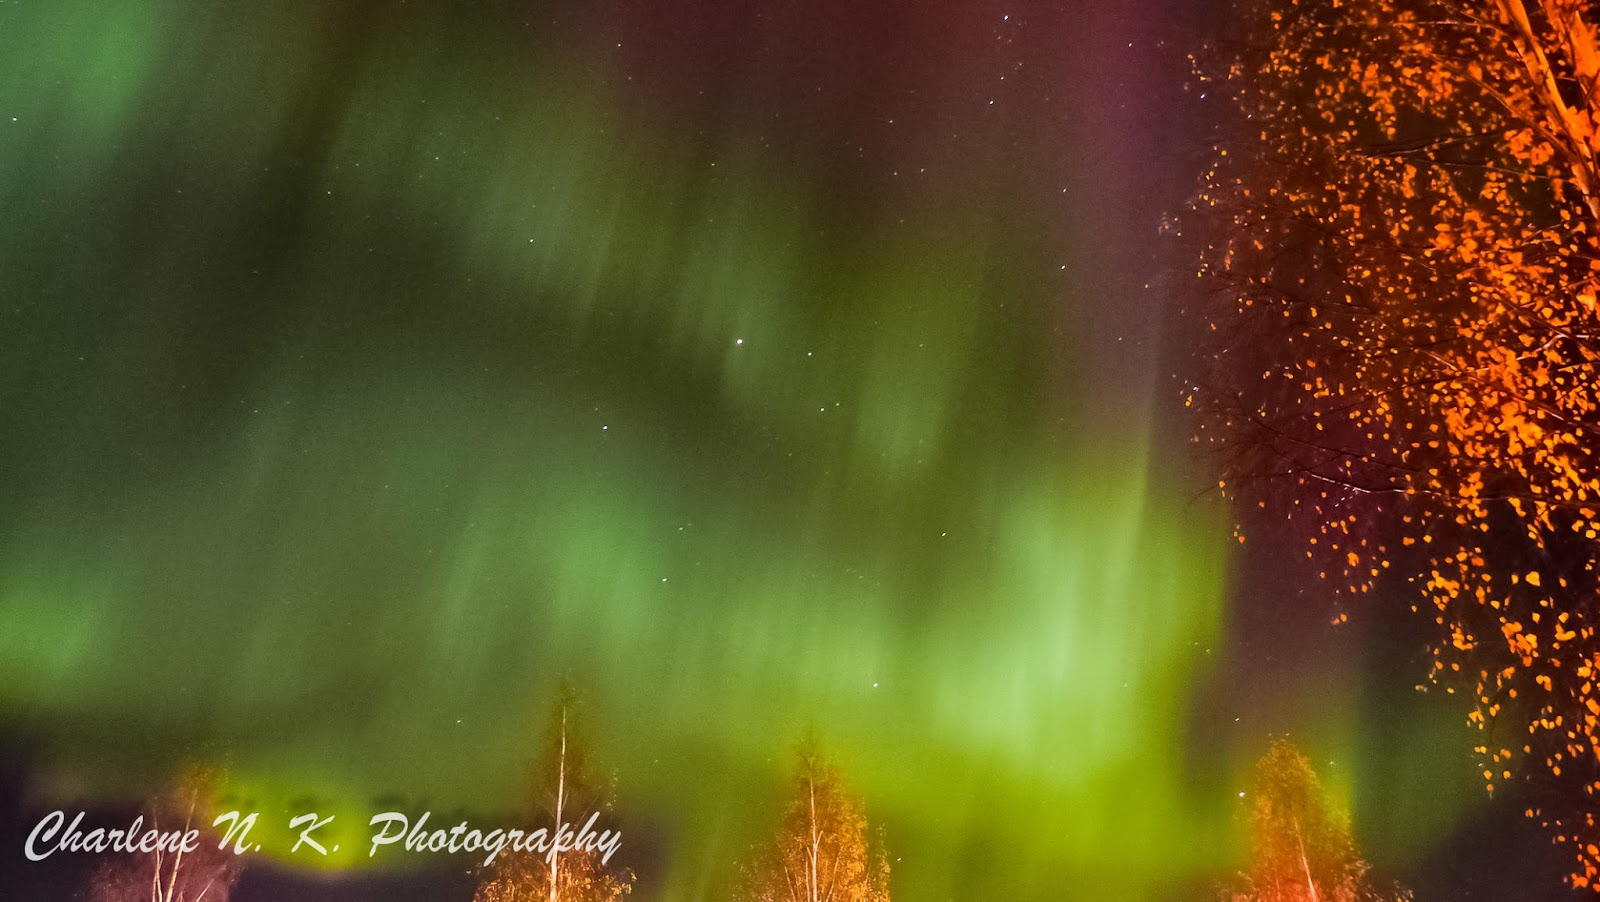 http://polarblogger-charsmeanderings.blogspot.se/2014/10/aurora-borealis-northern-lights-graced.html